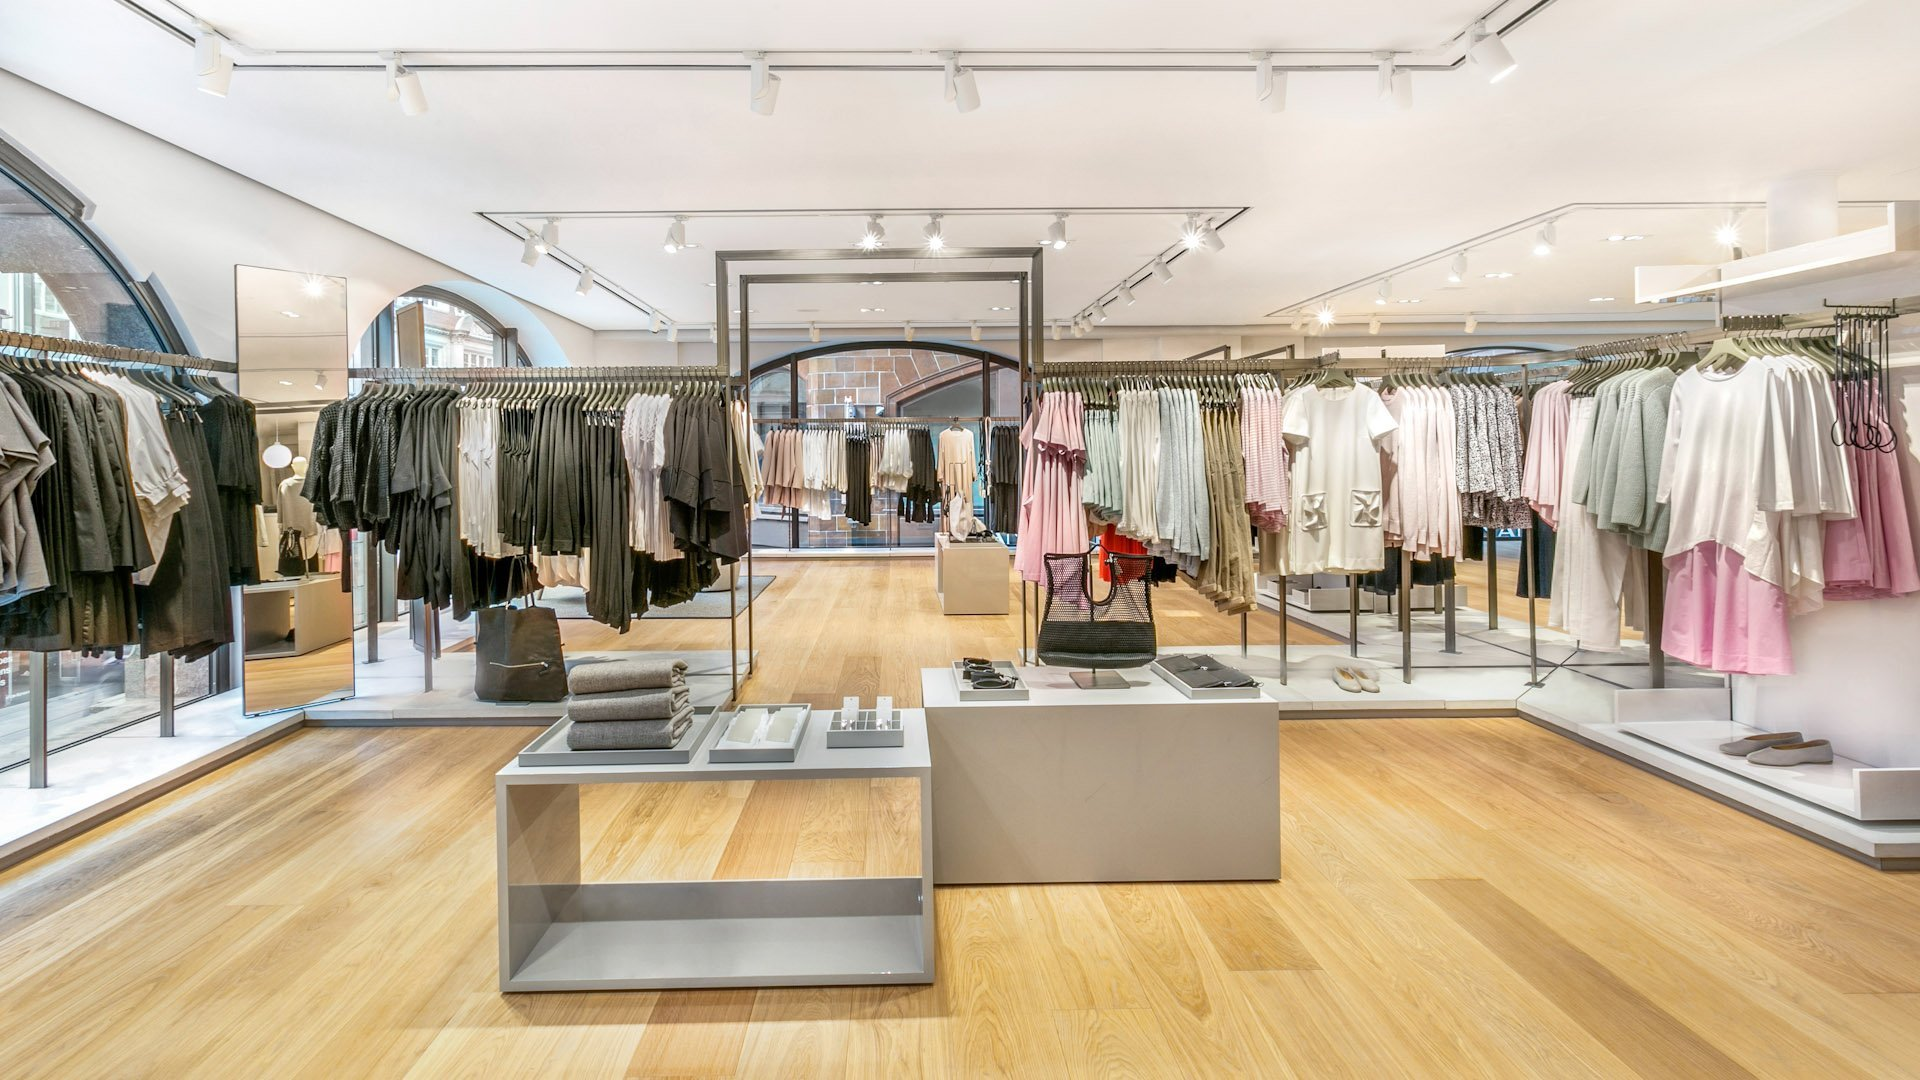 Retail Interior Photography In London Kalory Photo And Video London Uk Photographer And